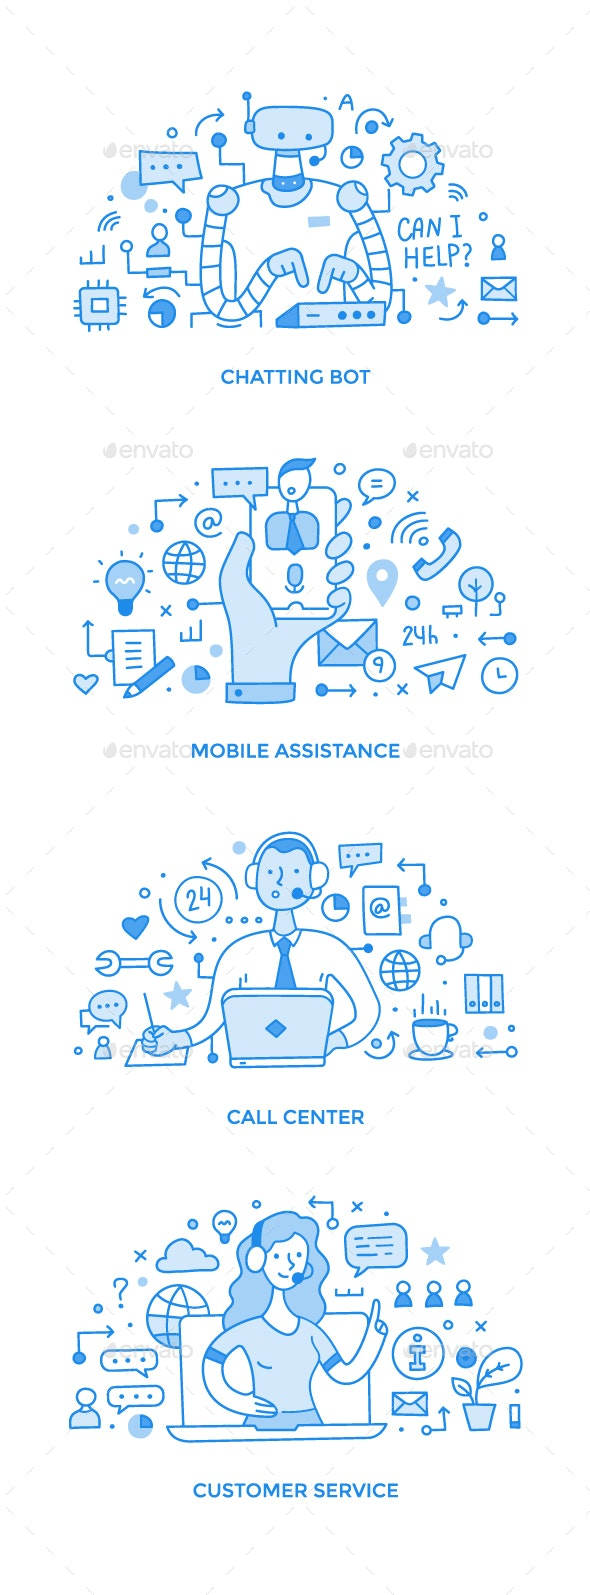 Collection of Customer Support & Professional Online Assistance Doodle Spot Illustrations - Communications Technology